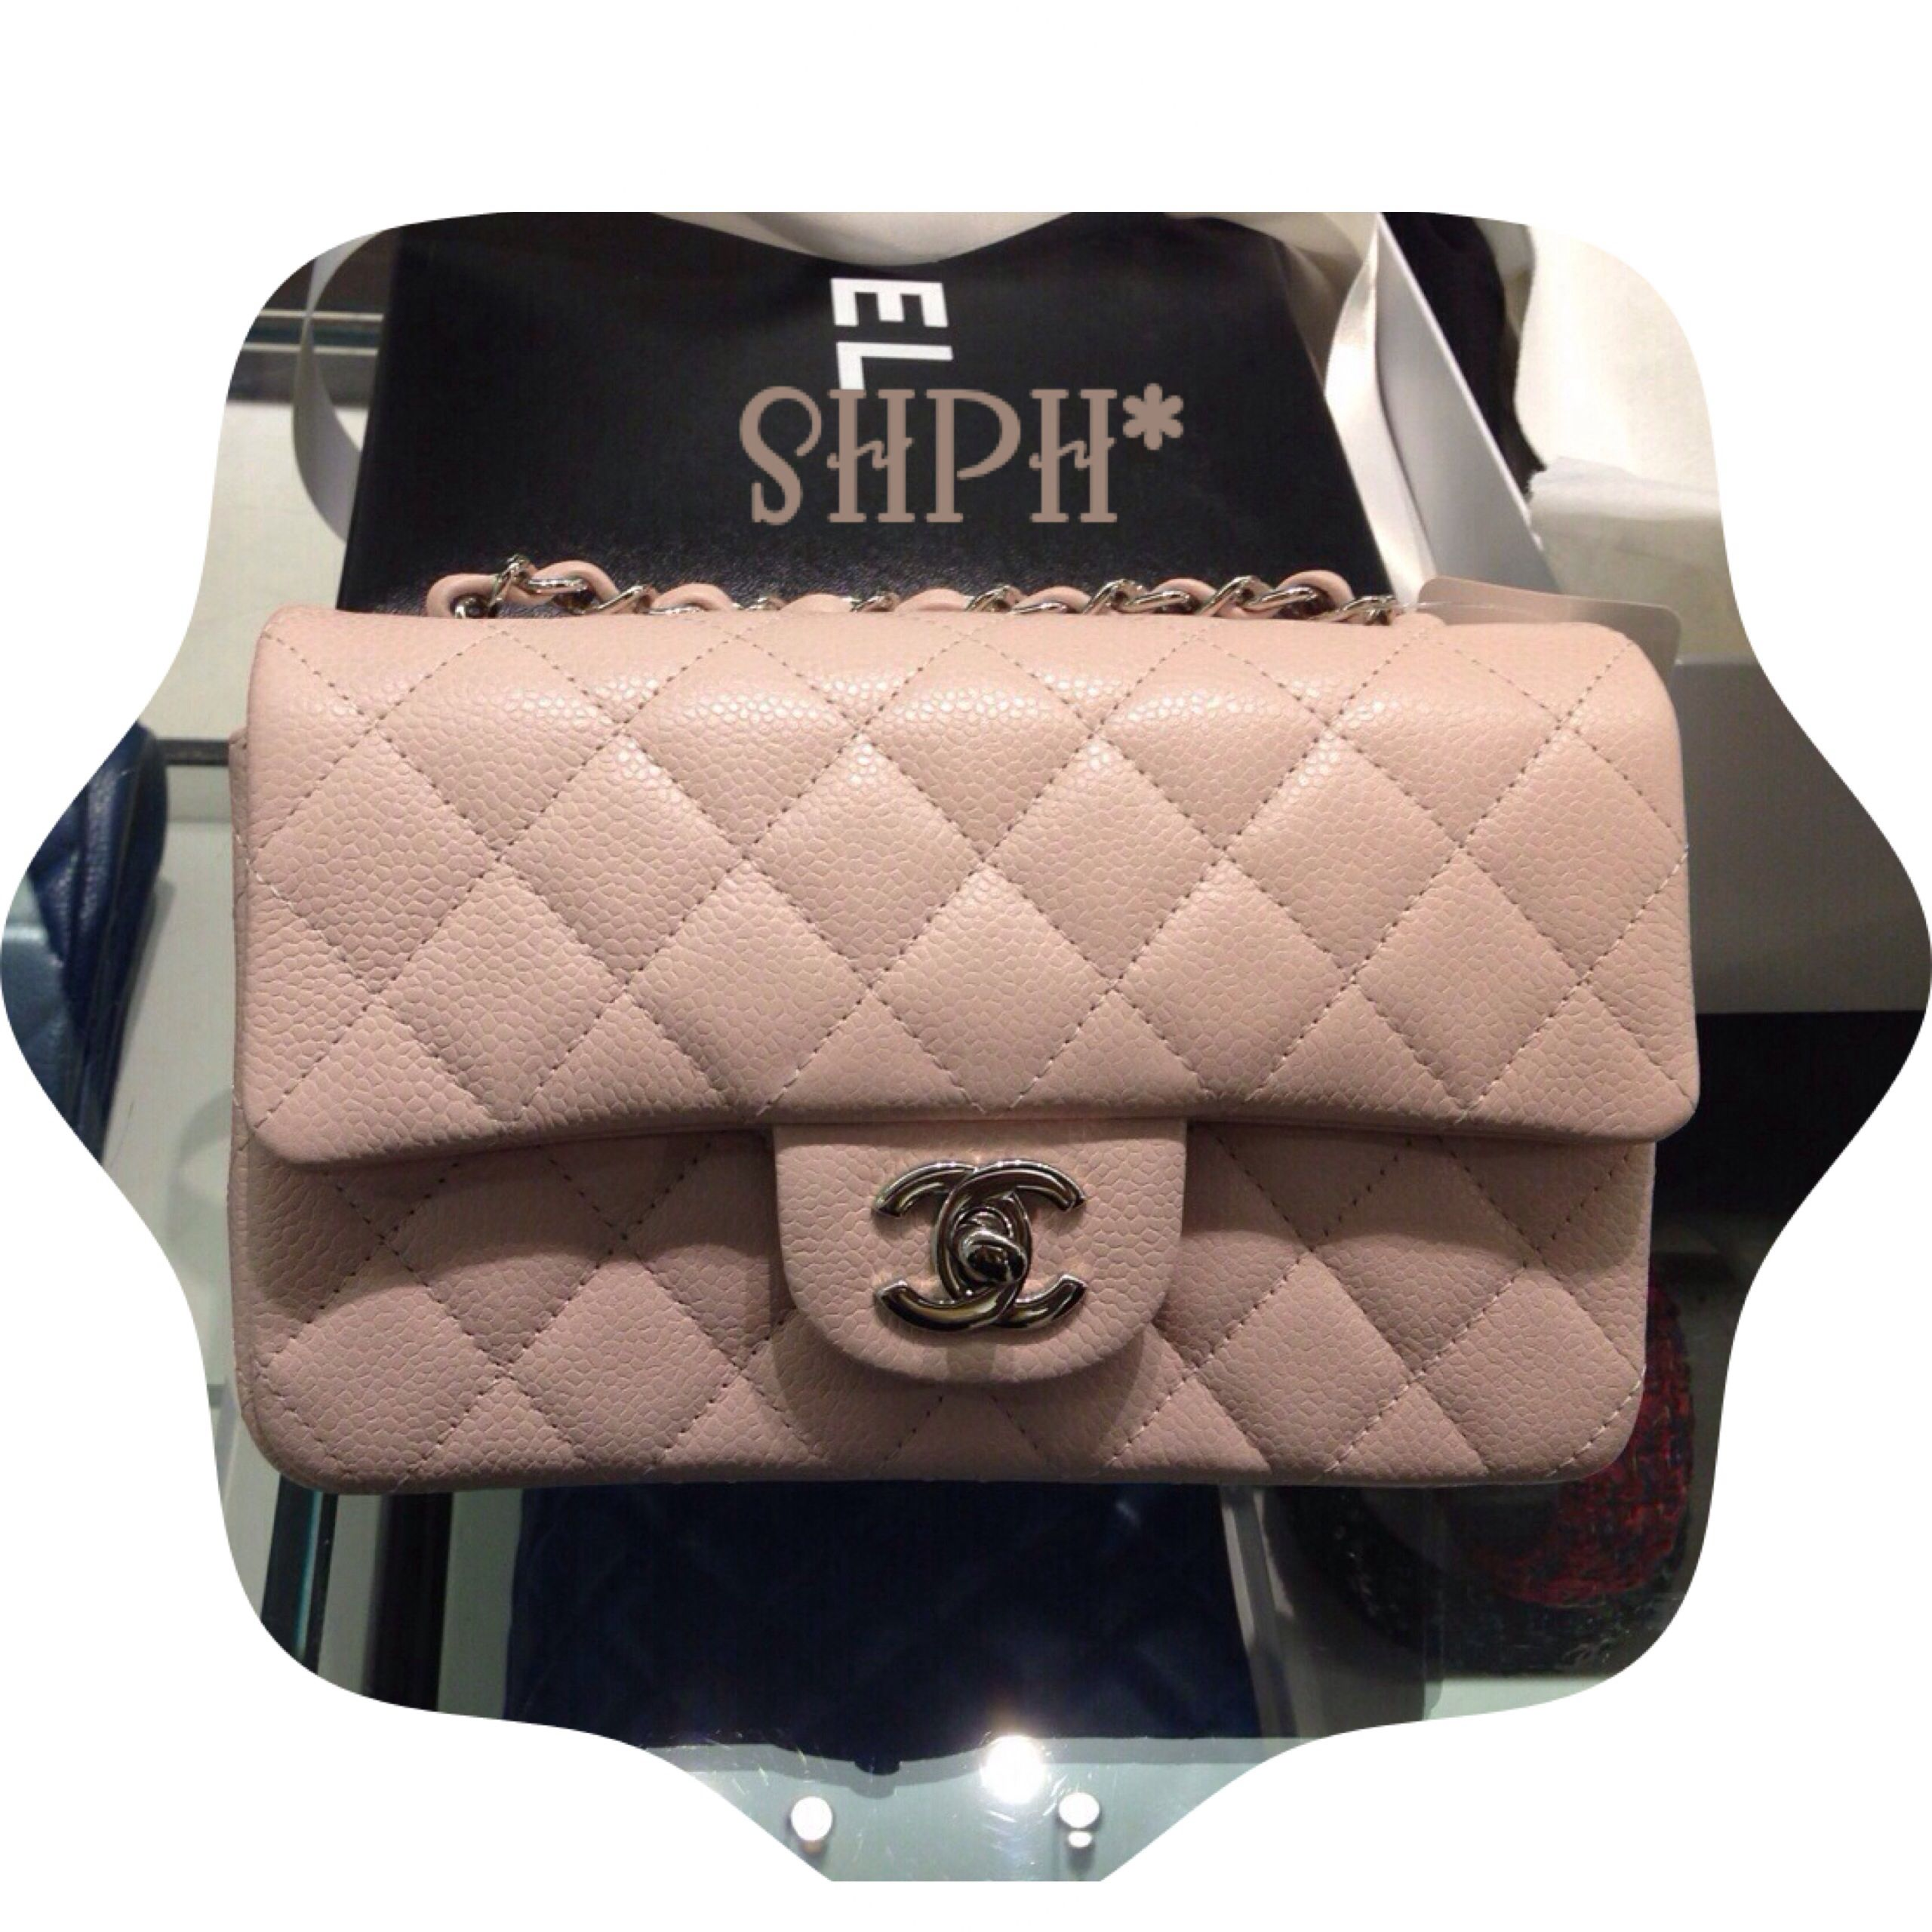 ab4a4f67333 New Chanel 14c rectangular mini 8